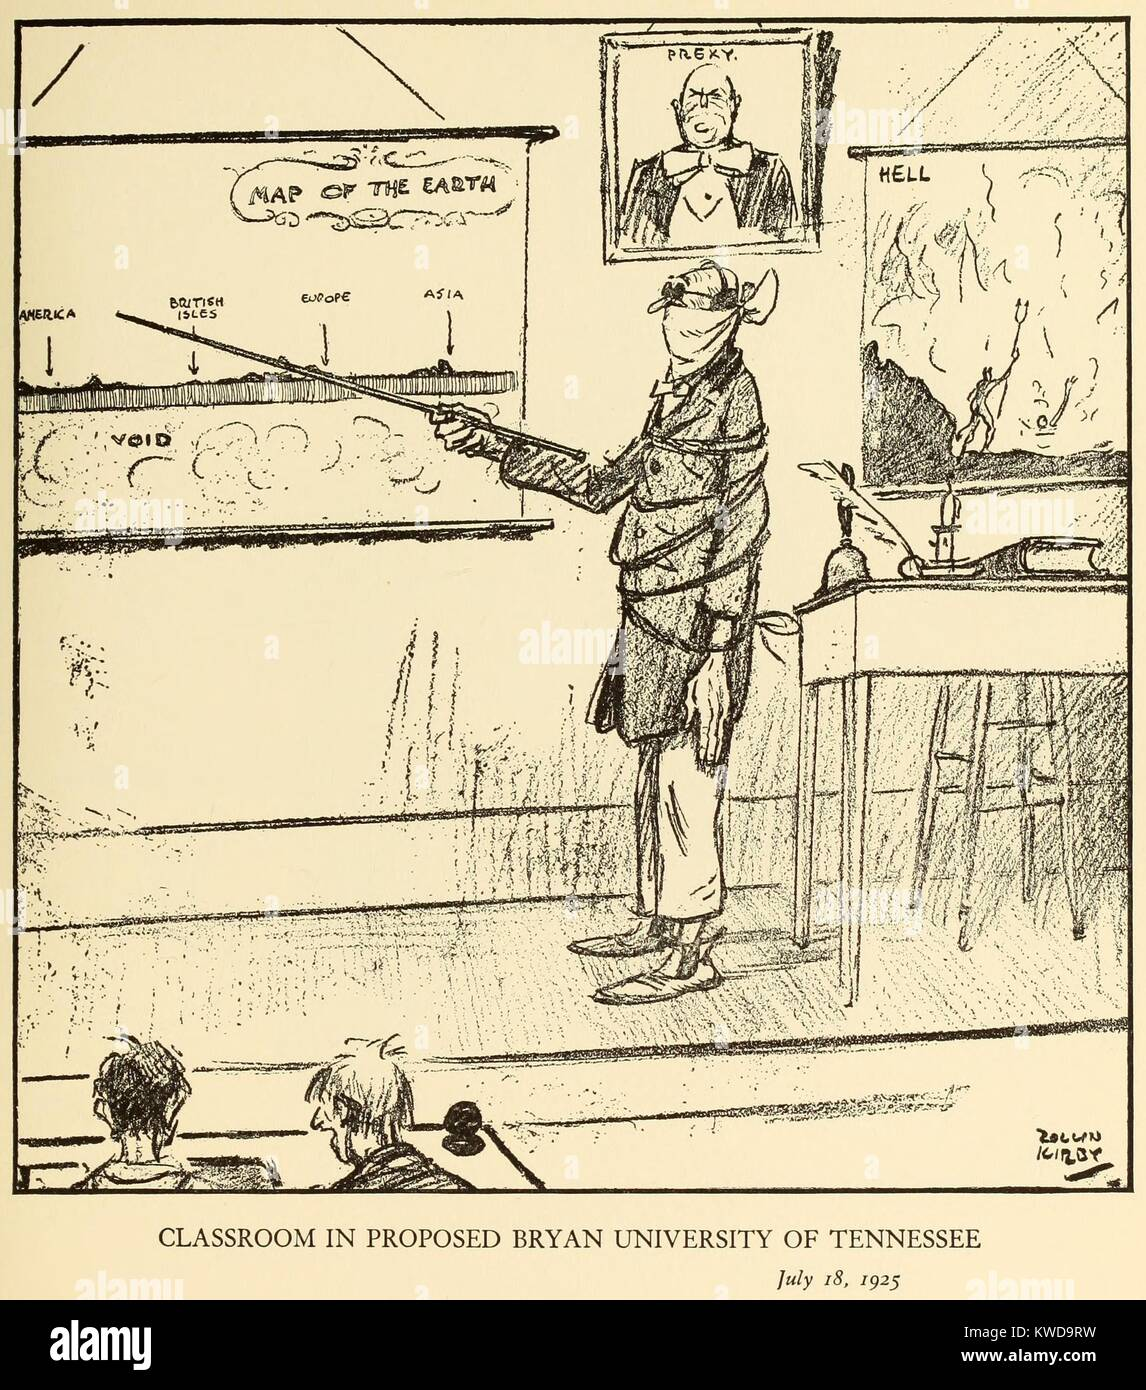 CLASSROON IN PROPOSED BRYAN UNIVERSITY IN TENNESSEE, July 18, 1925, by Rollin Kirby, NEW YORK WORLD. The gagged - Stock Image